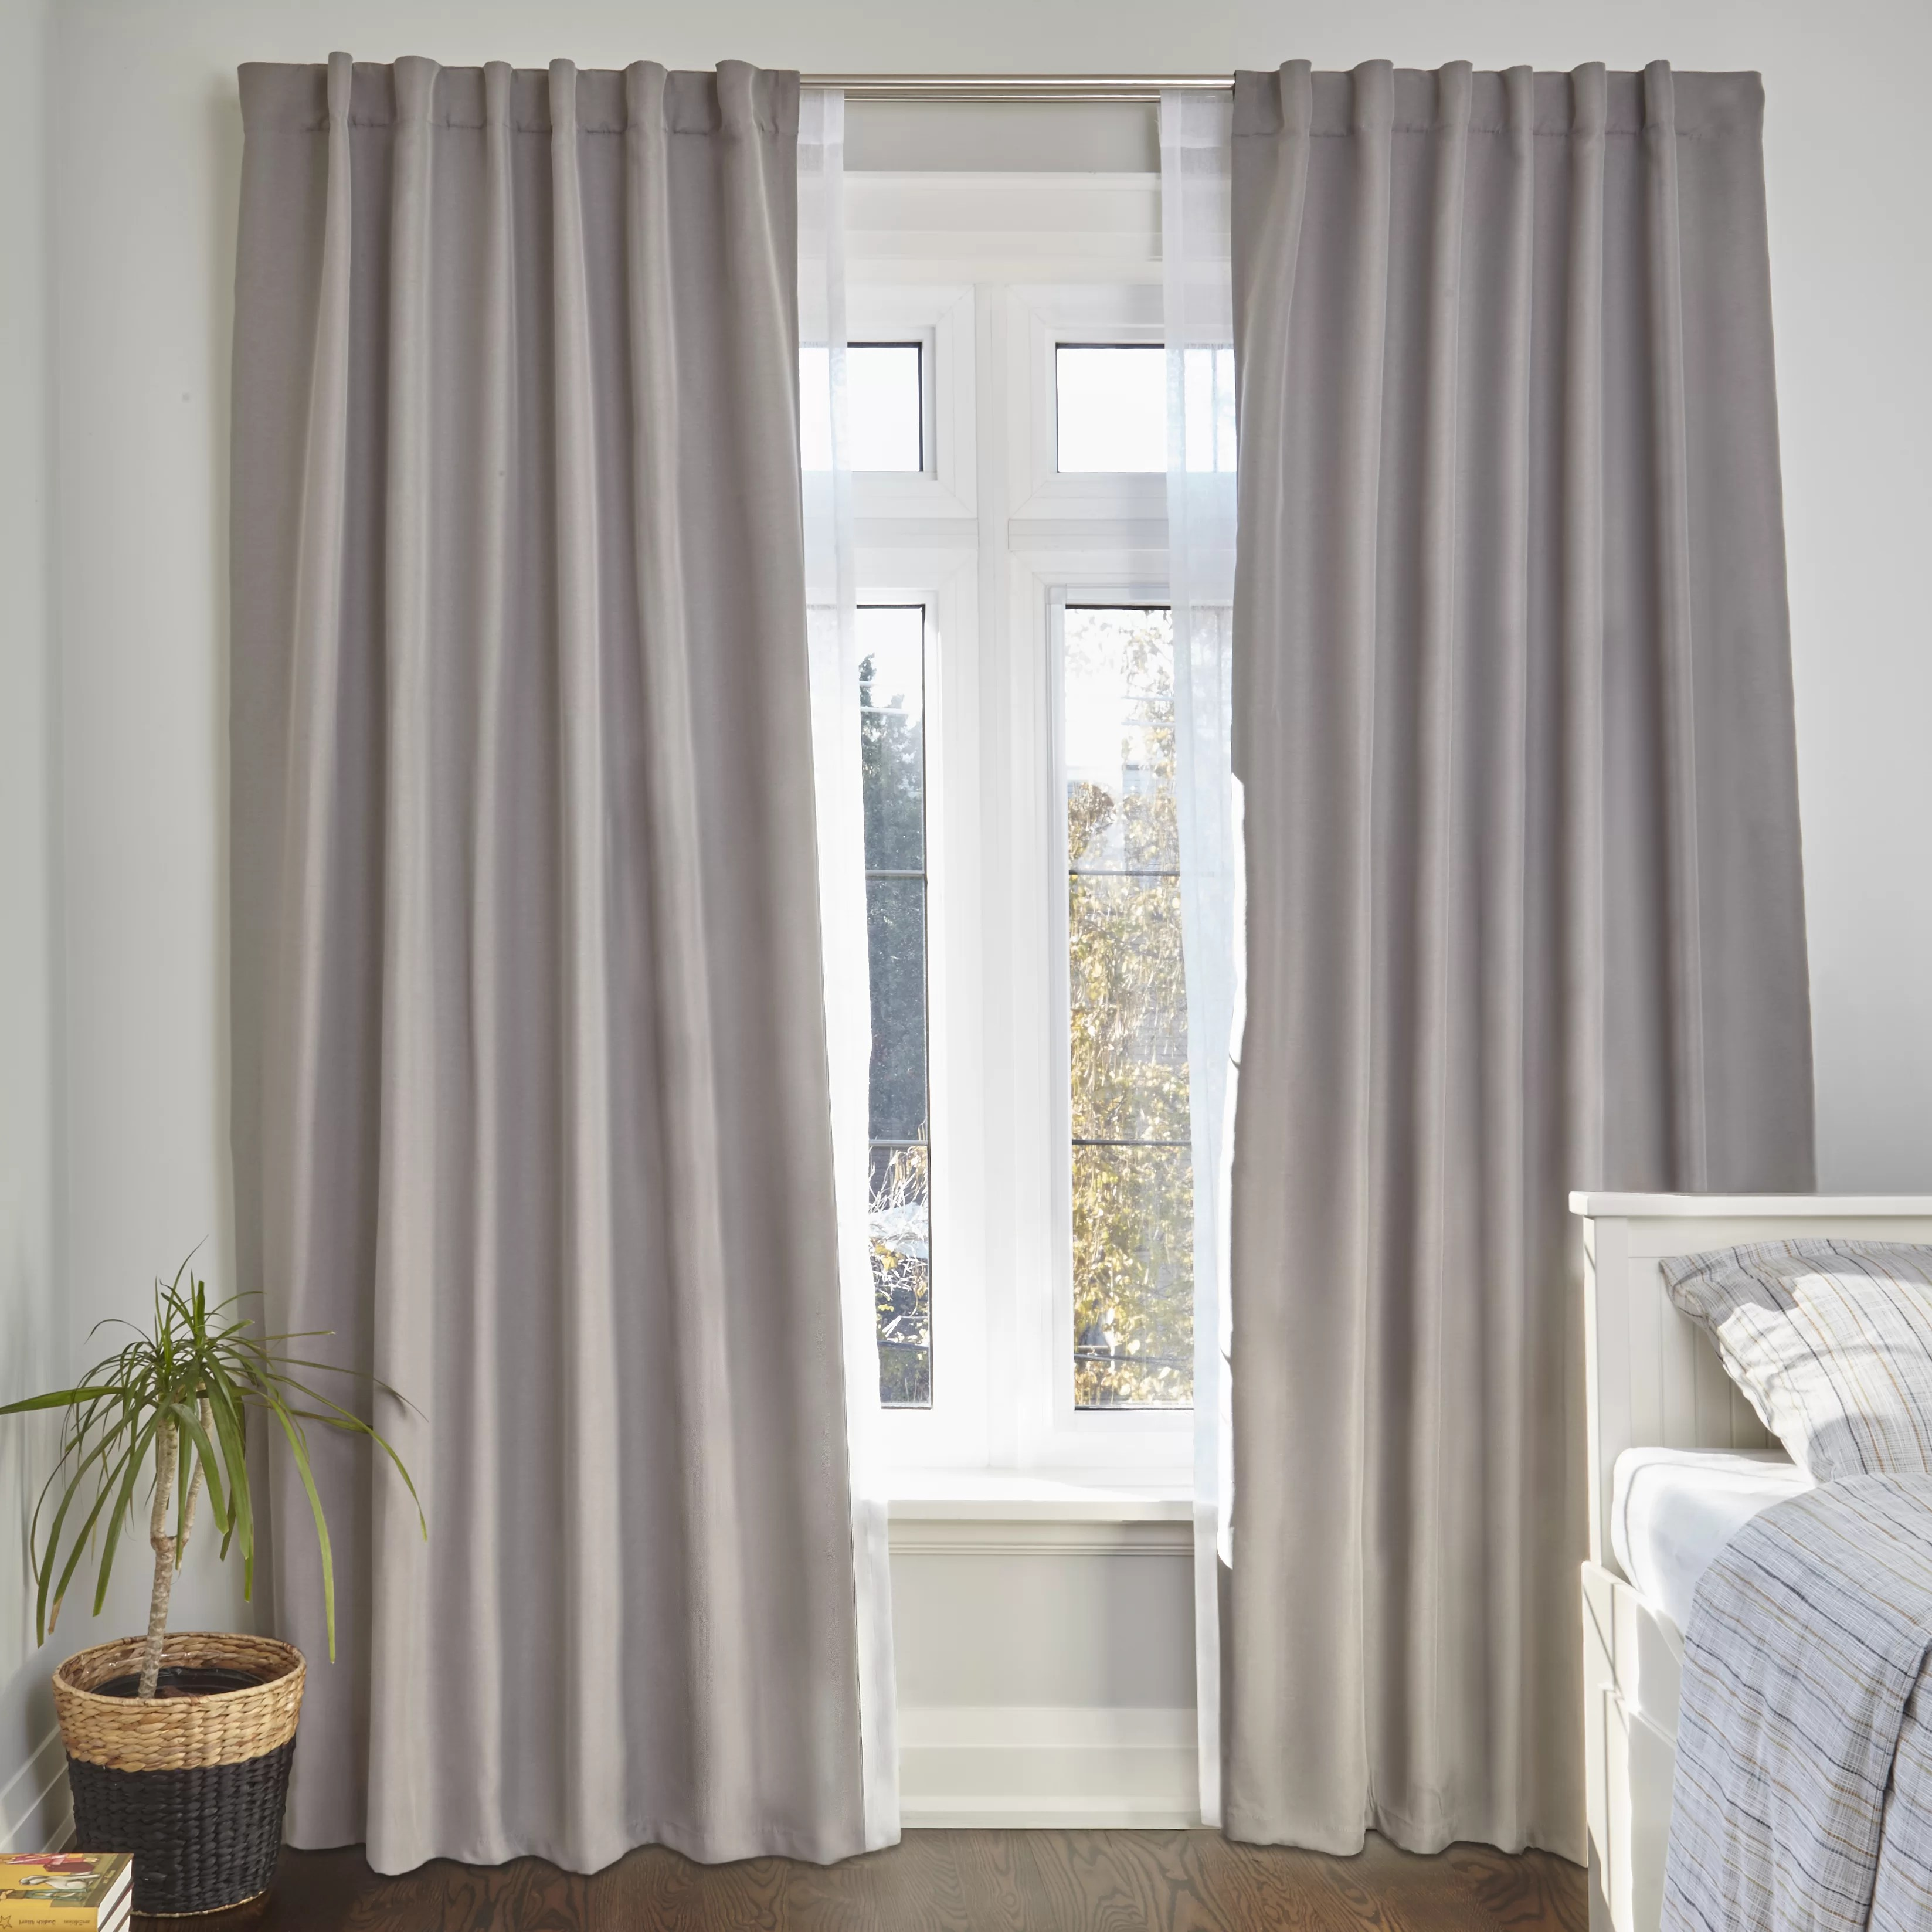 Curtain For Double Window Bushnell Room Darkening Double Curtain Rod